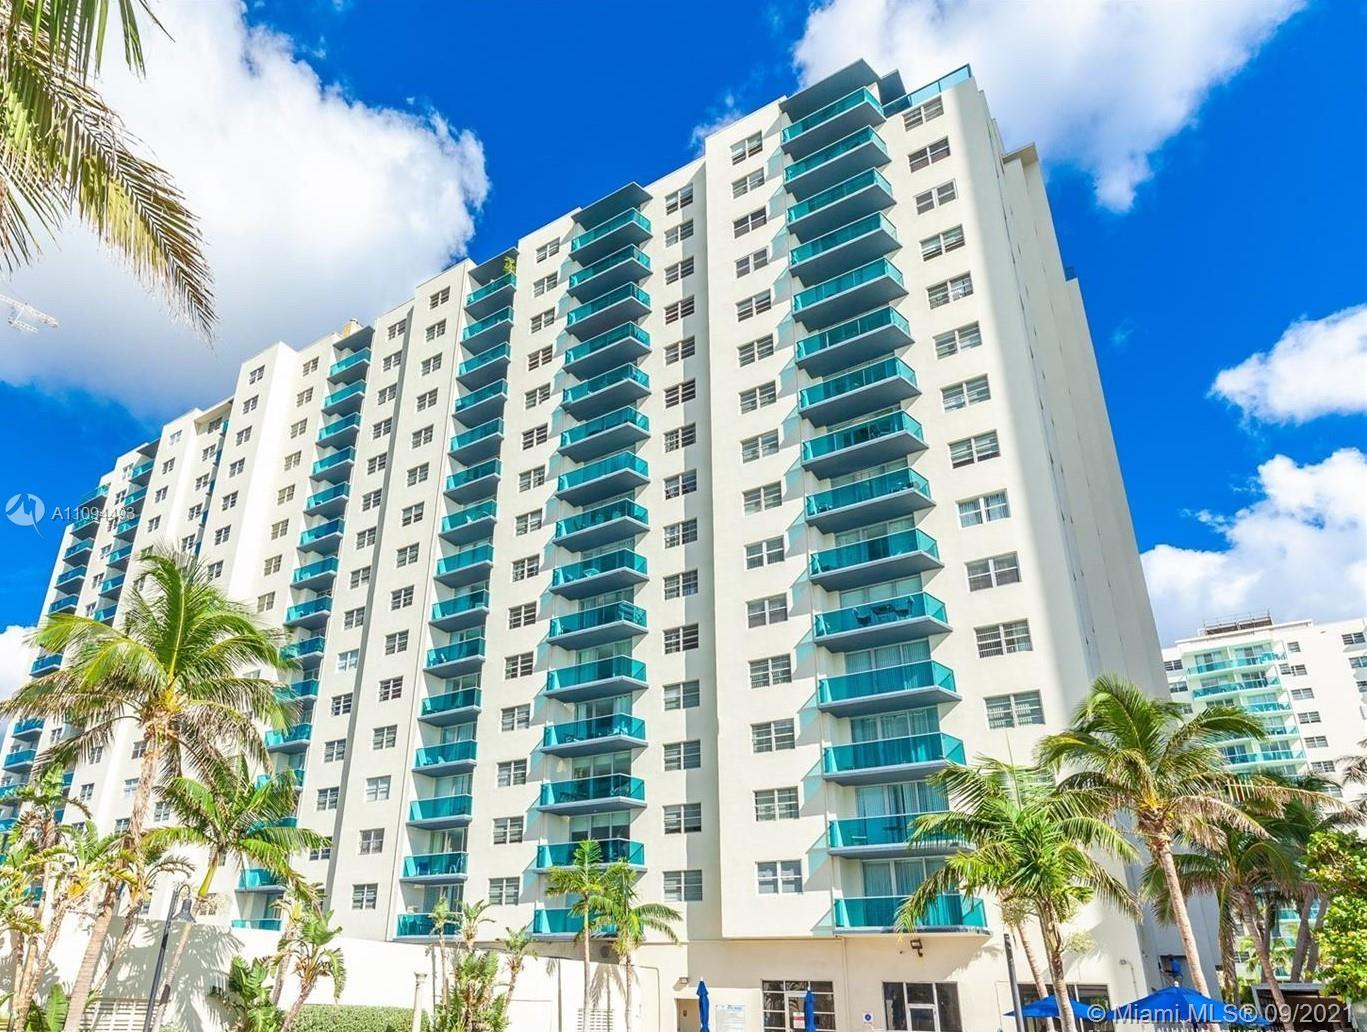 BEACH FRONT LOCATION**1 BED+DEN**NE Exposure with Ocean Views**TURNKEY VACATION RENTAL UNIT that Pro